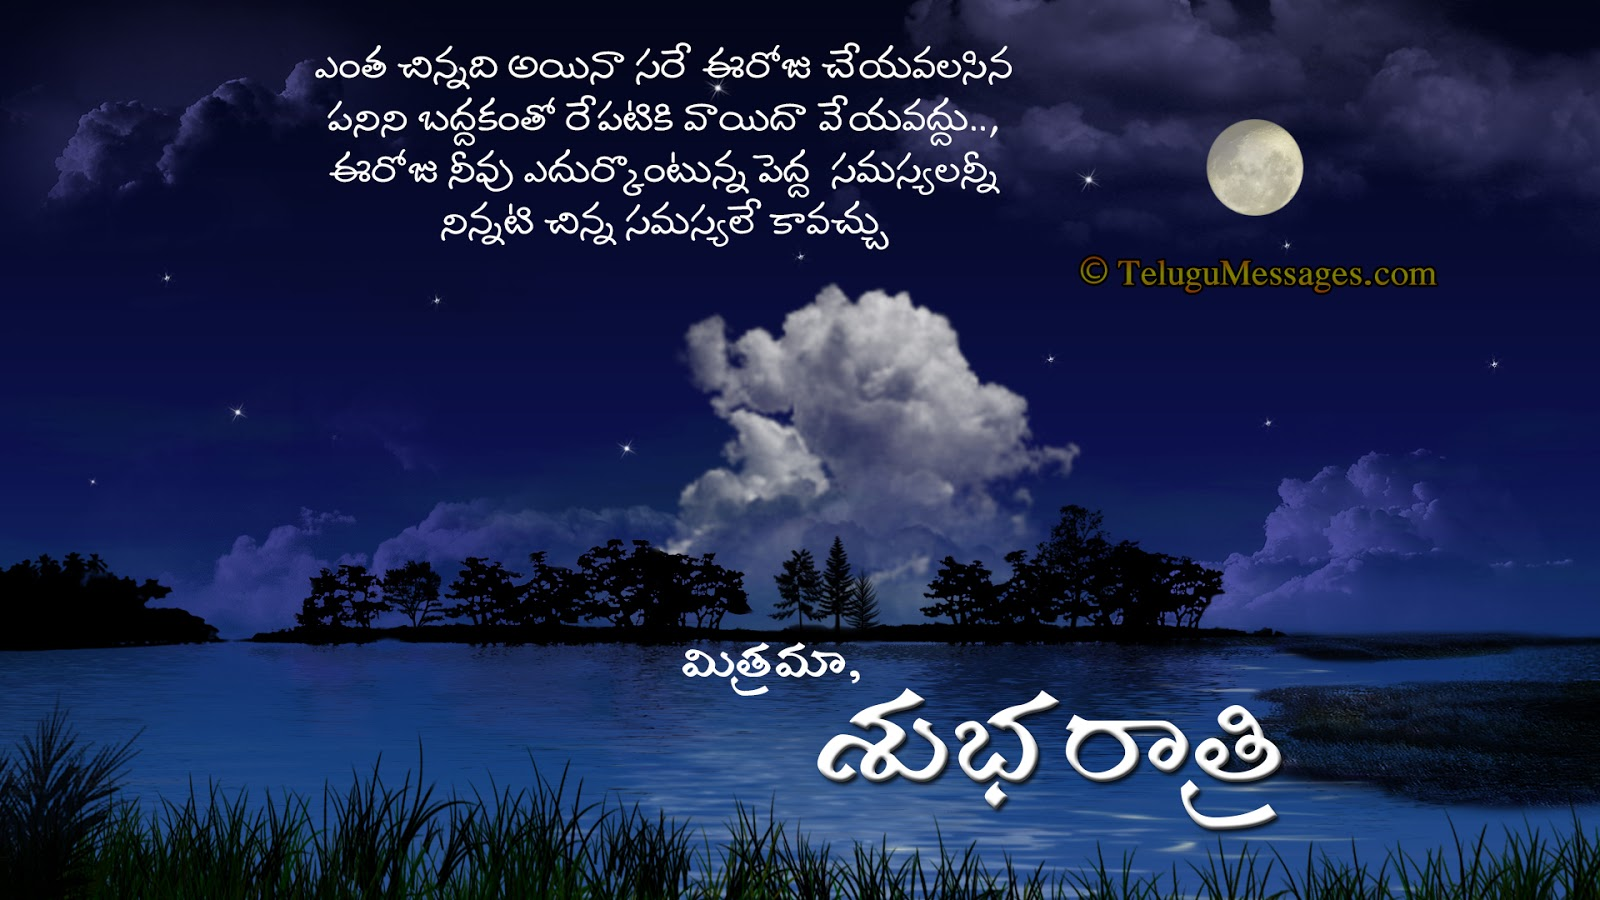 telugu good night friendship sweet dreams quote good